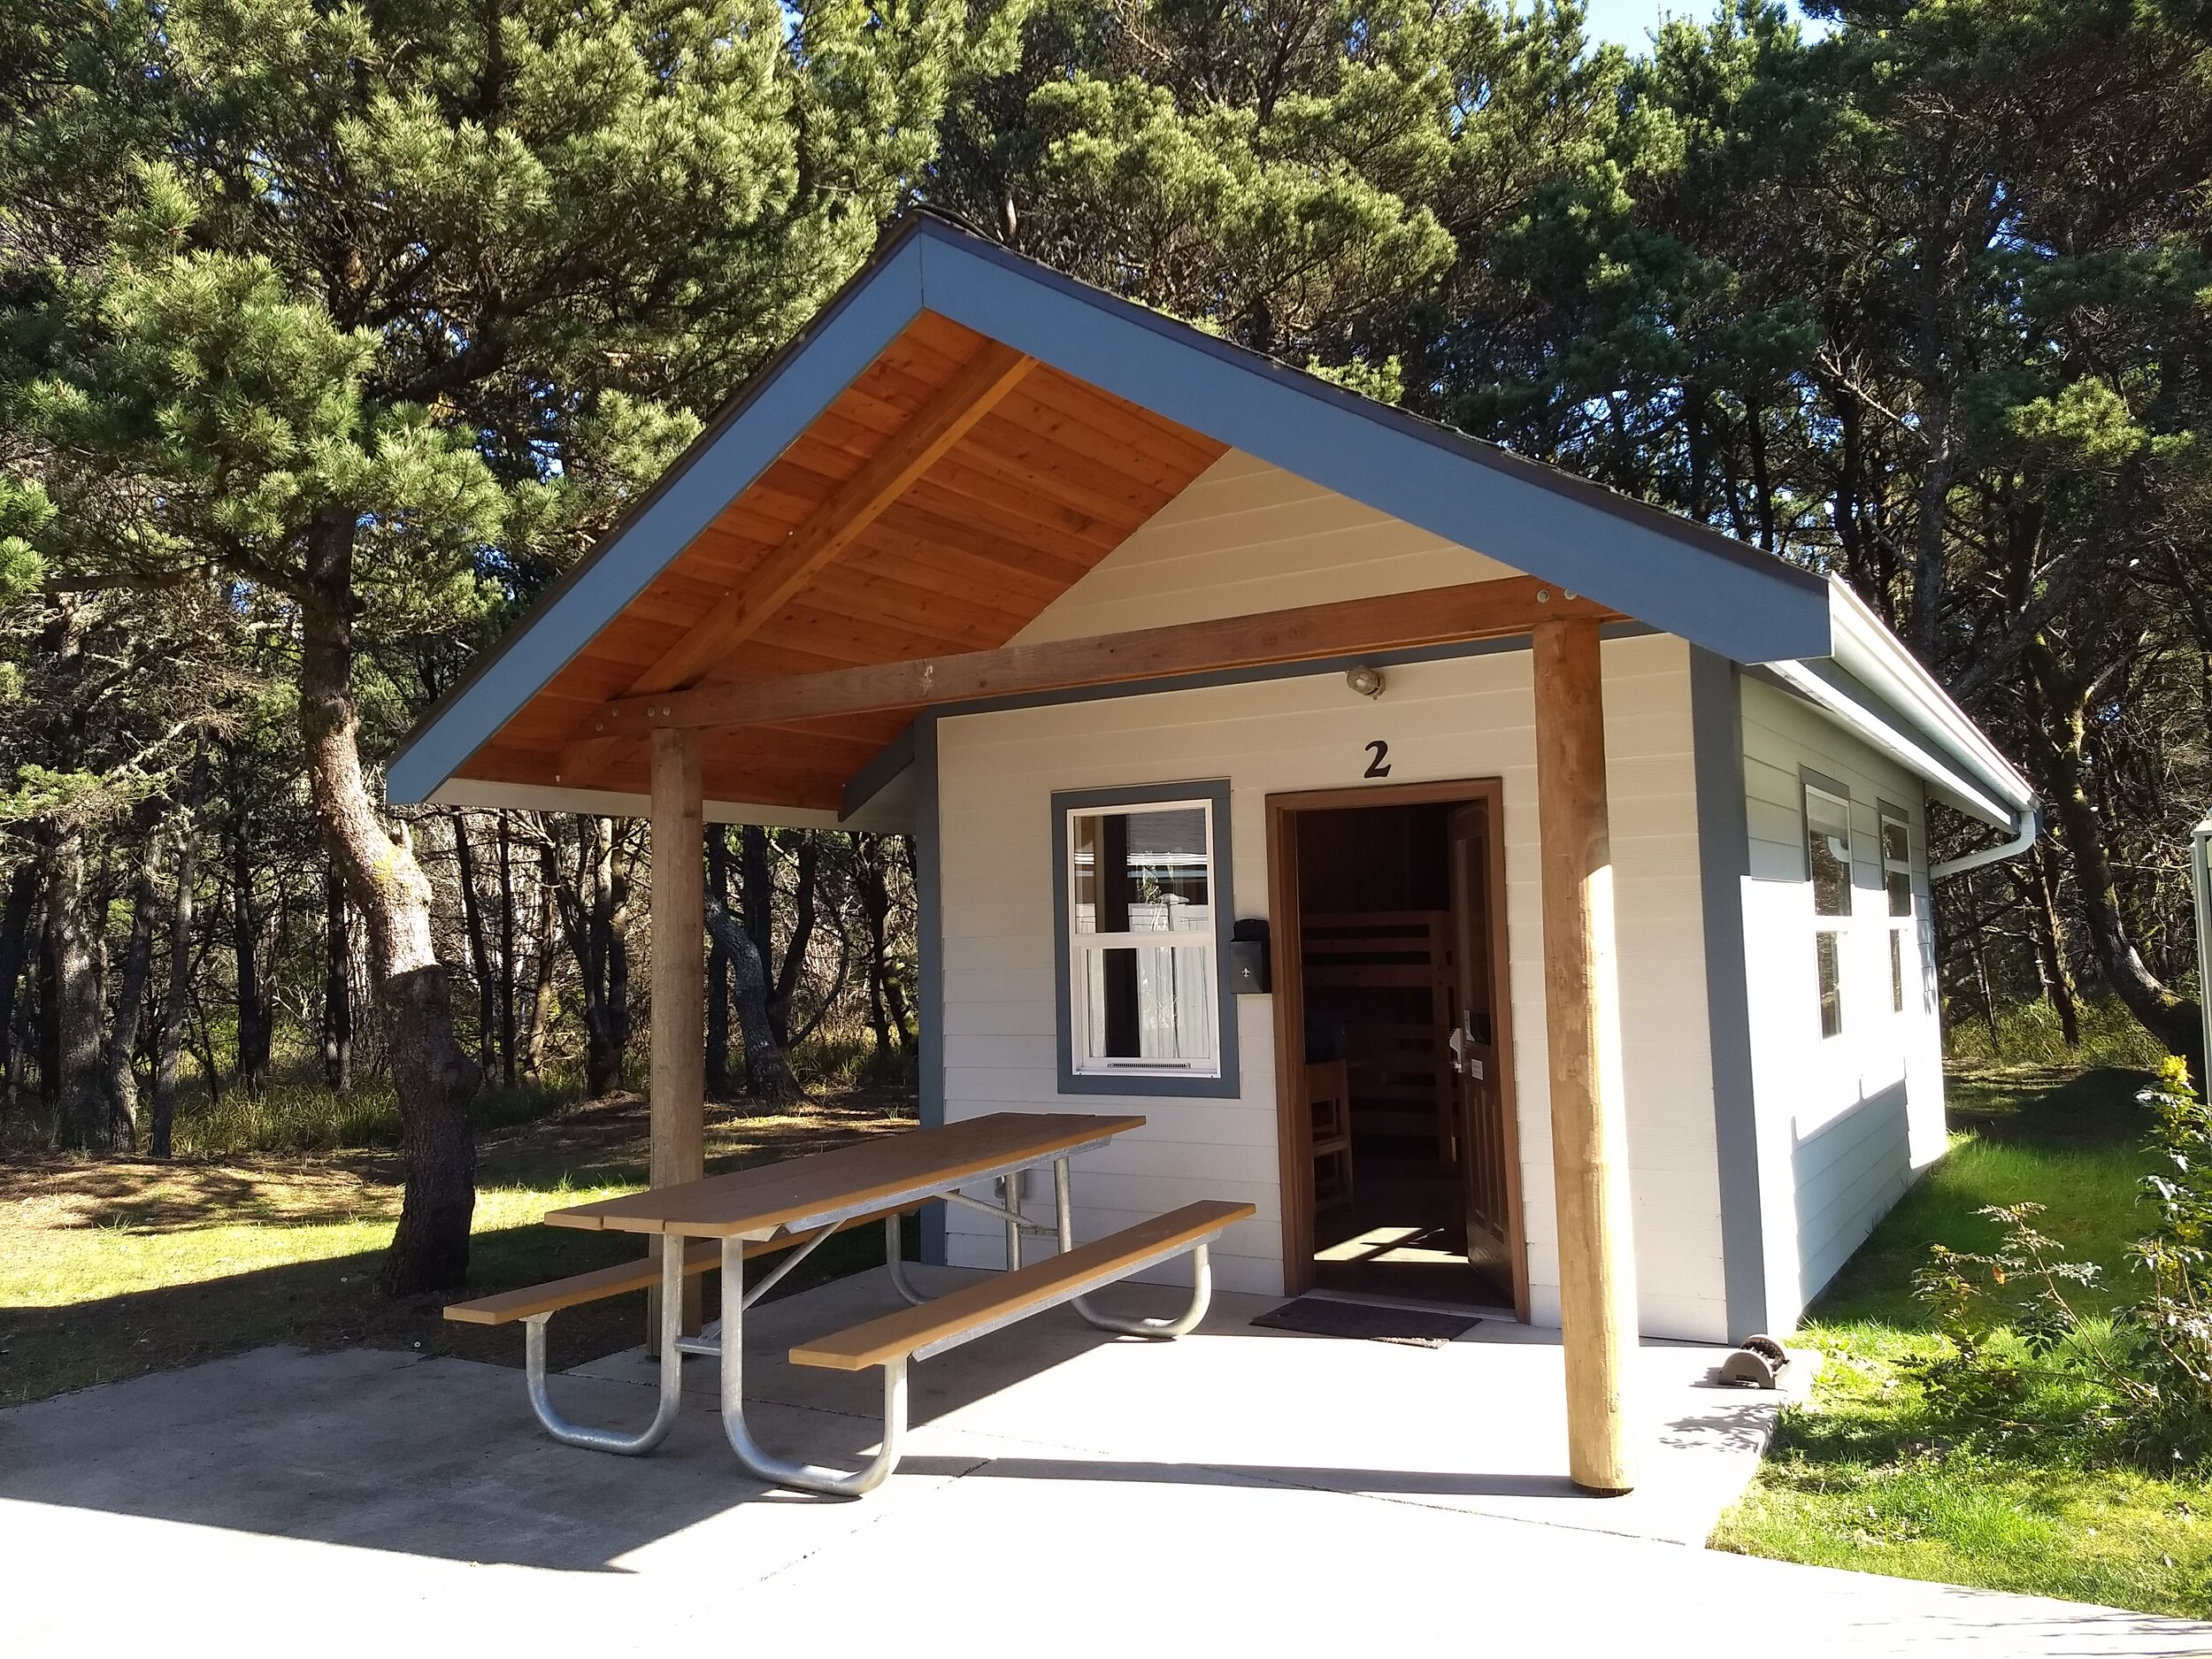 Twin Harbor State Park has five new rustic cabins, plus two yurts, standard campsites, and 42 full hookup RV sites.